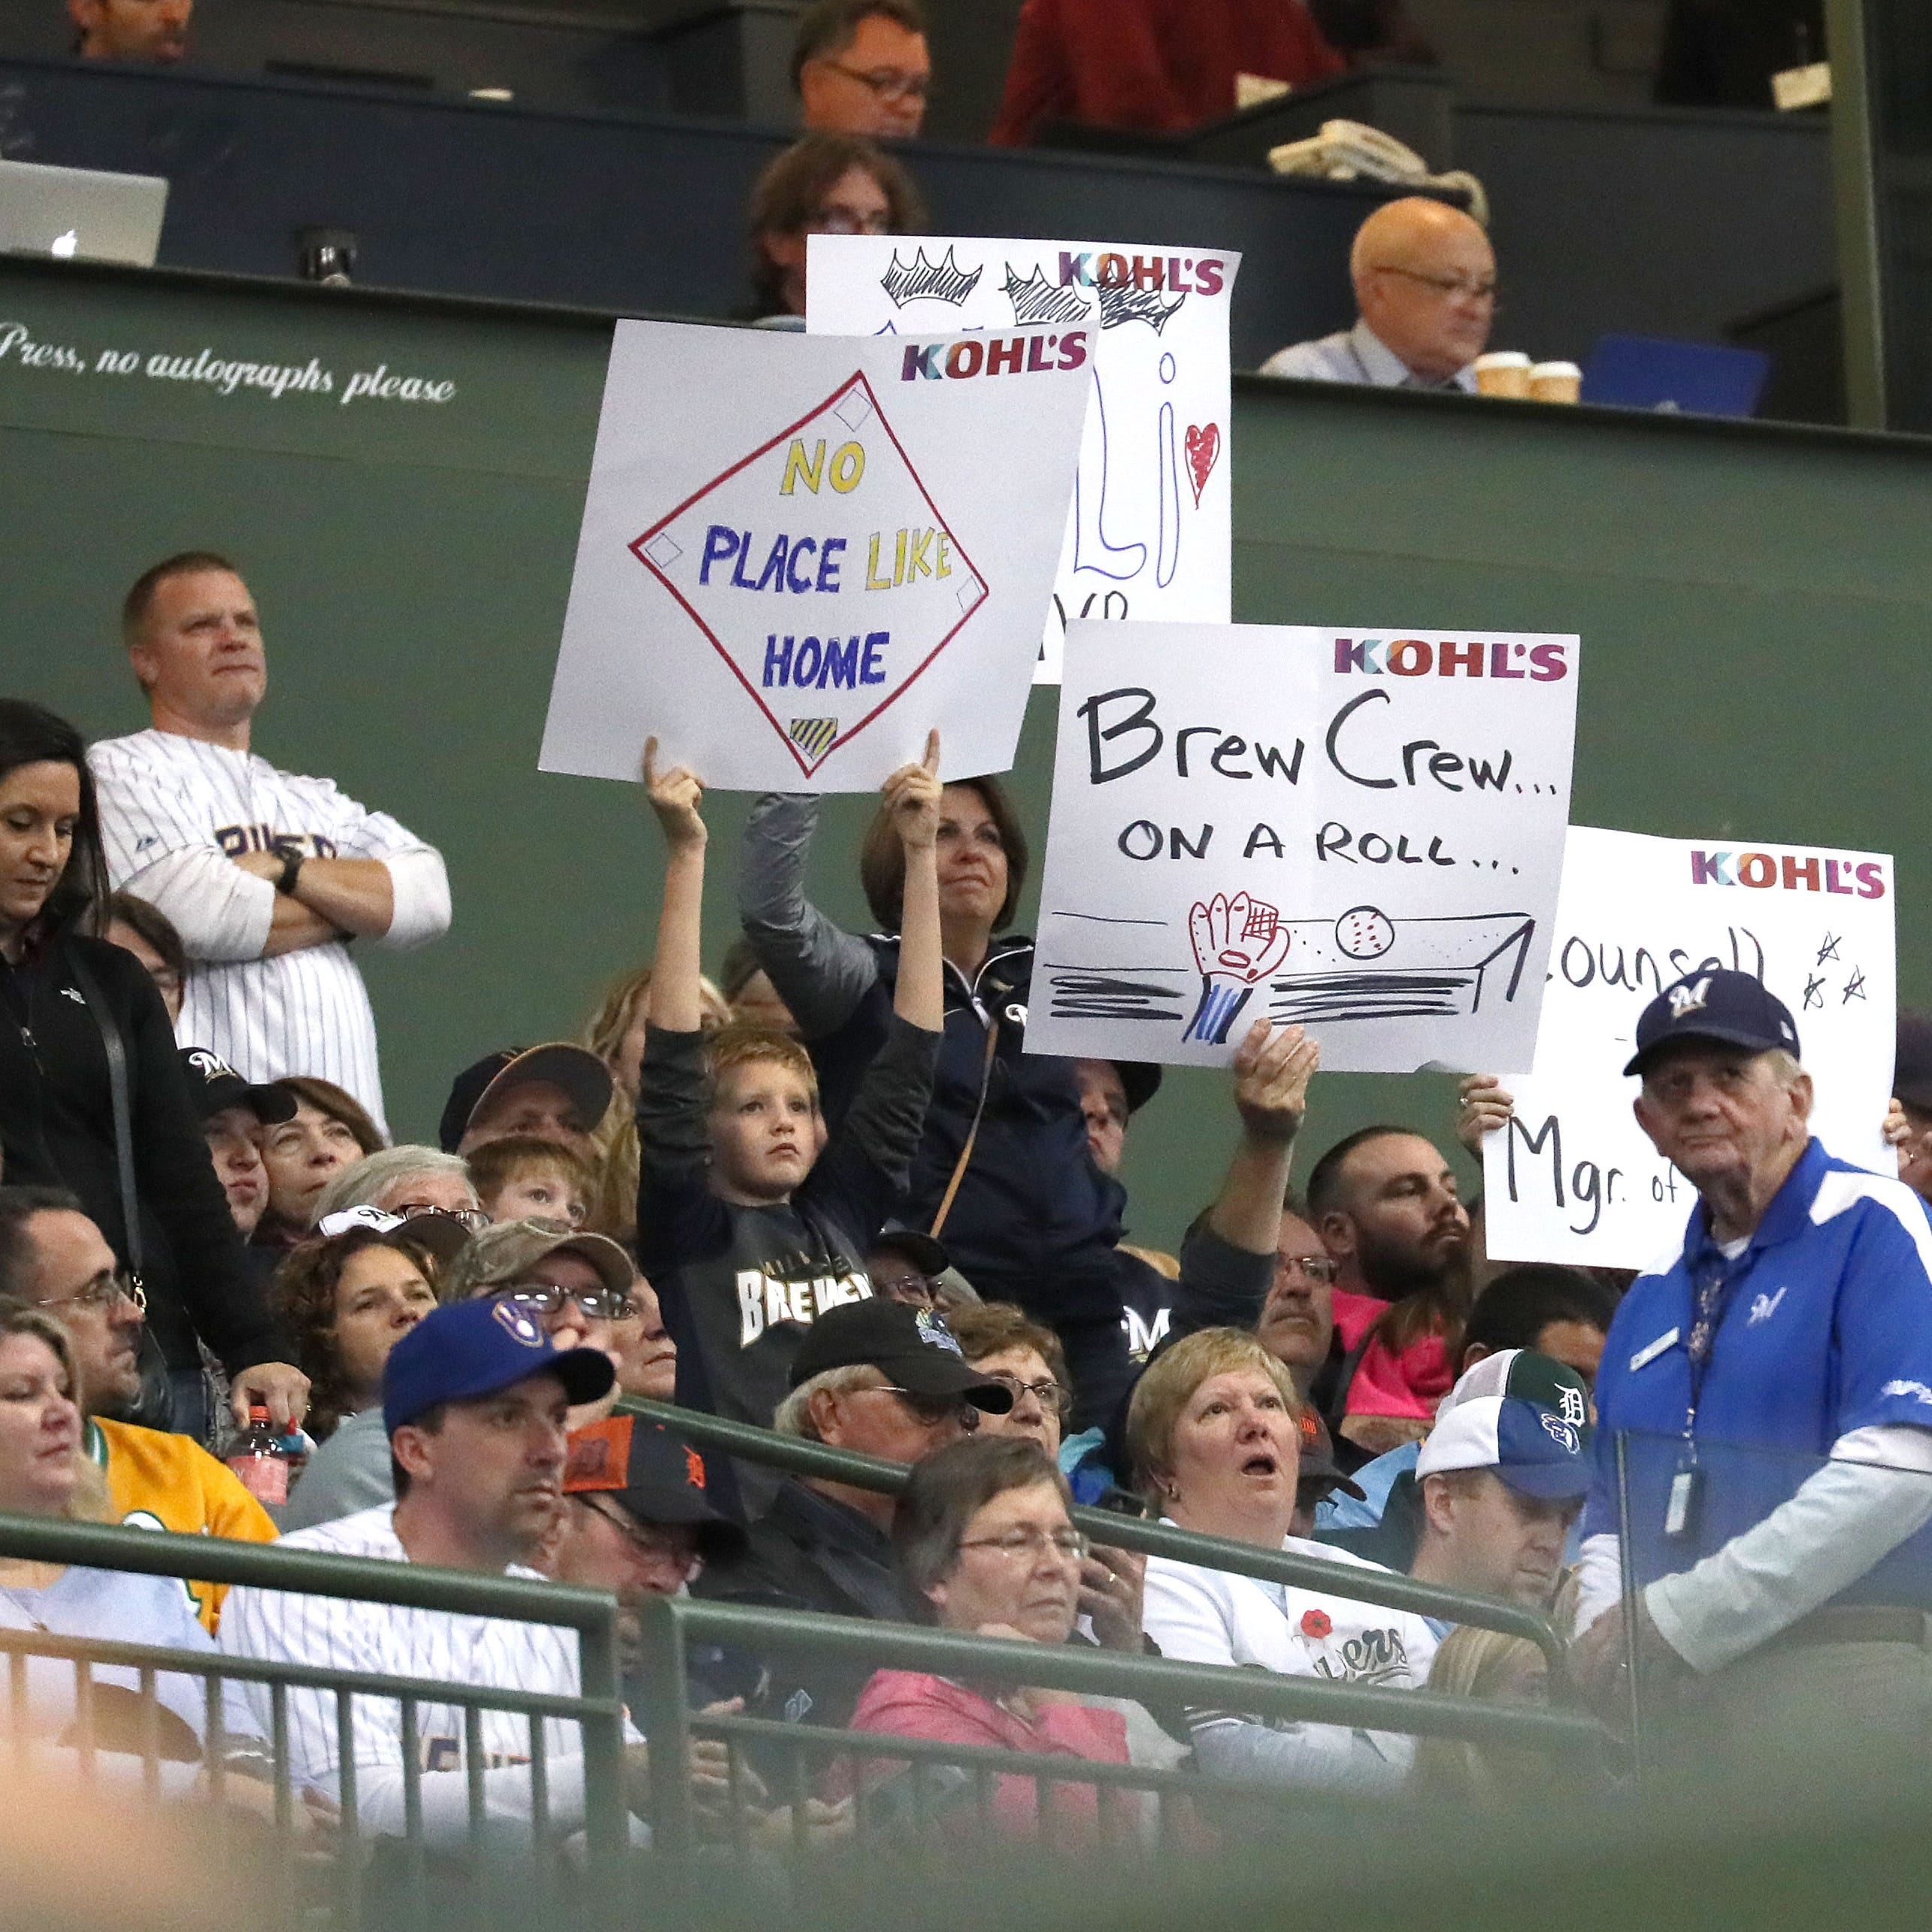 Fans hold signs high cheering the Brewers on at Miller Park where the Brewers played the Tigers looking for a regular playoff berth.